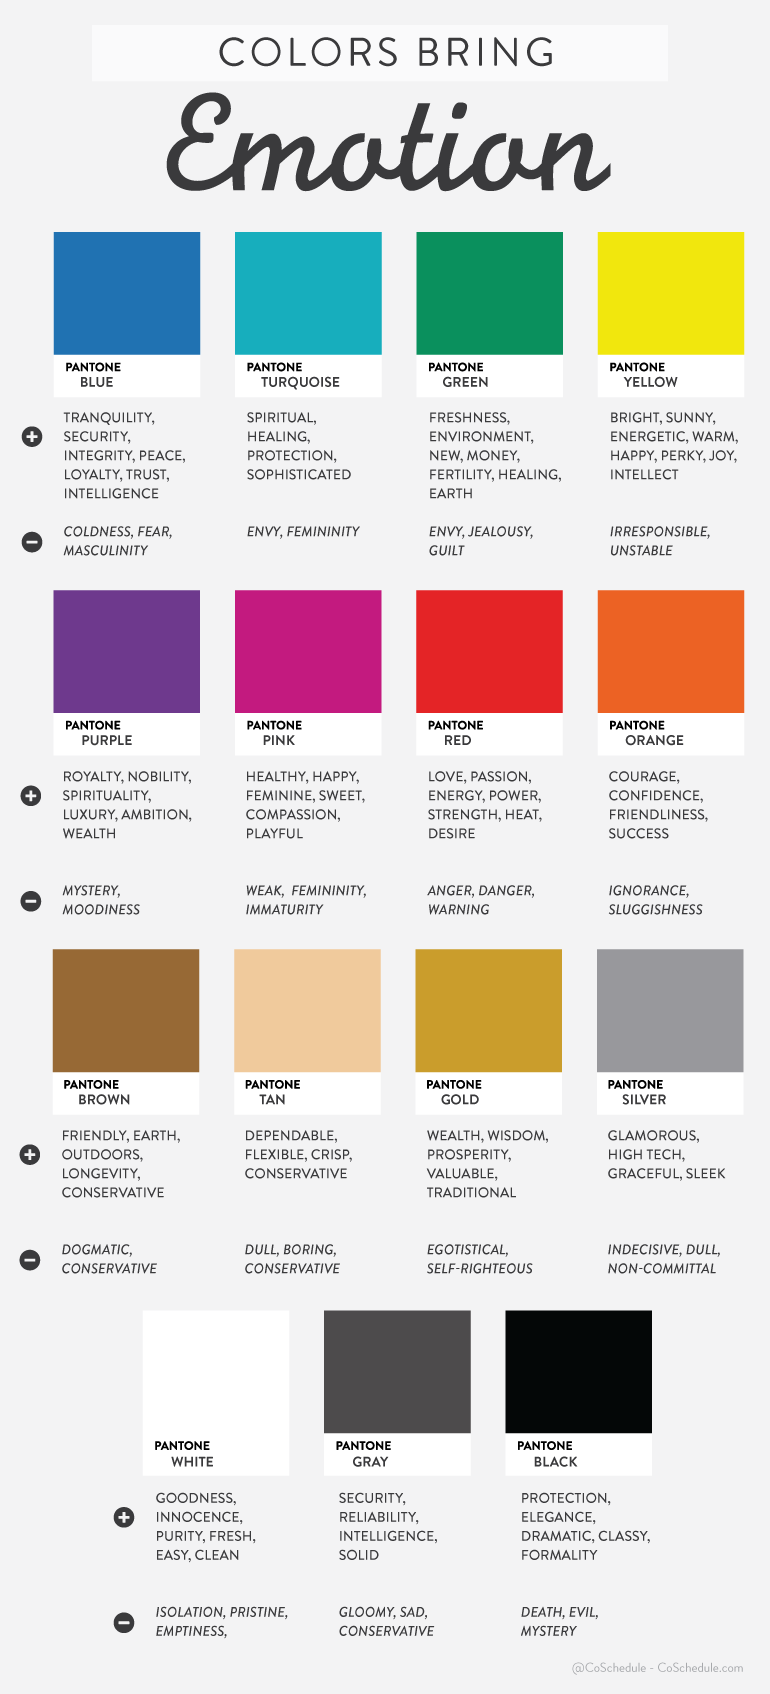 color emotion meanings - color theory guide for blog branding and marketing